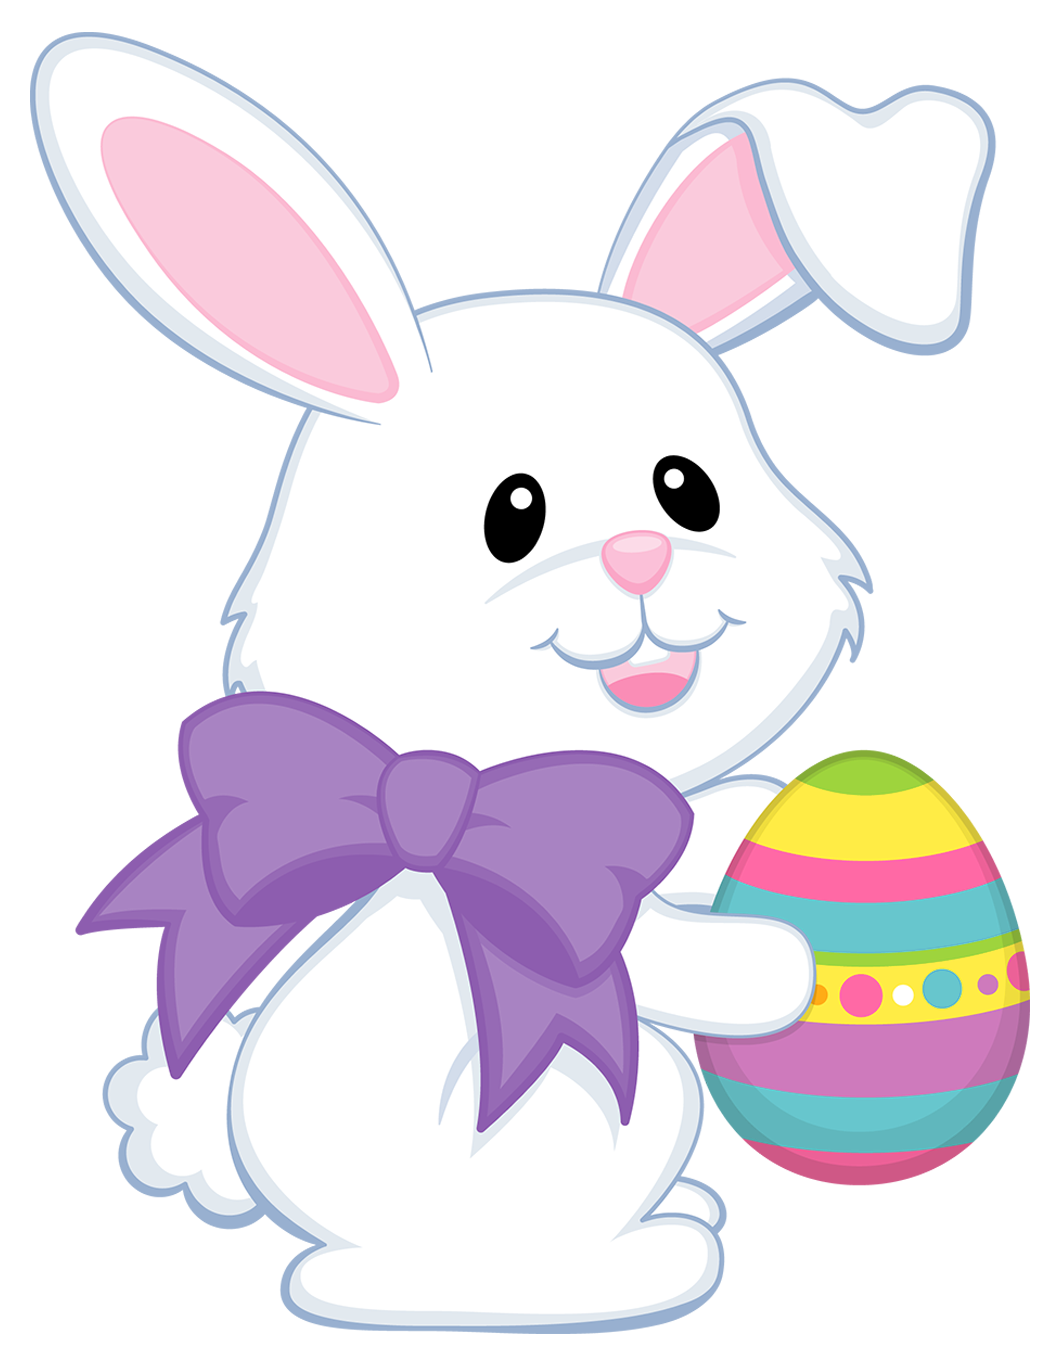 Cute easter bunny clipart graphic download Easter Cute Bunny with Purple Bow Transparent PNG Clipart   Gallery ... graphic download